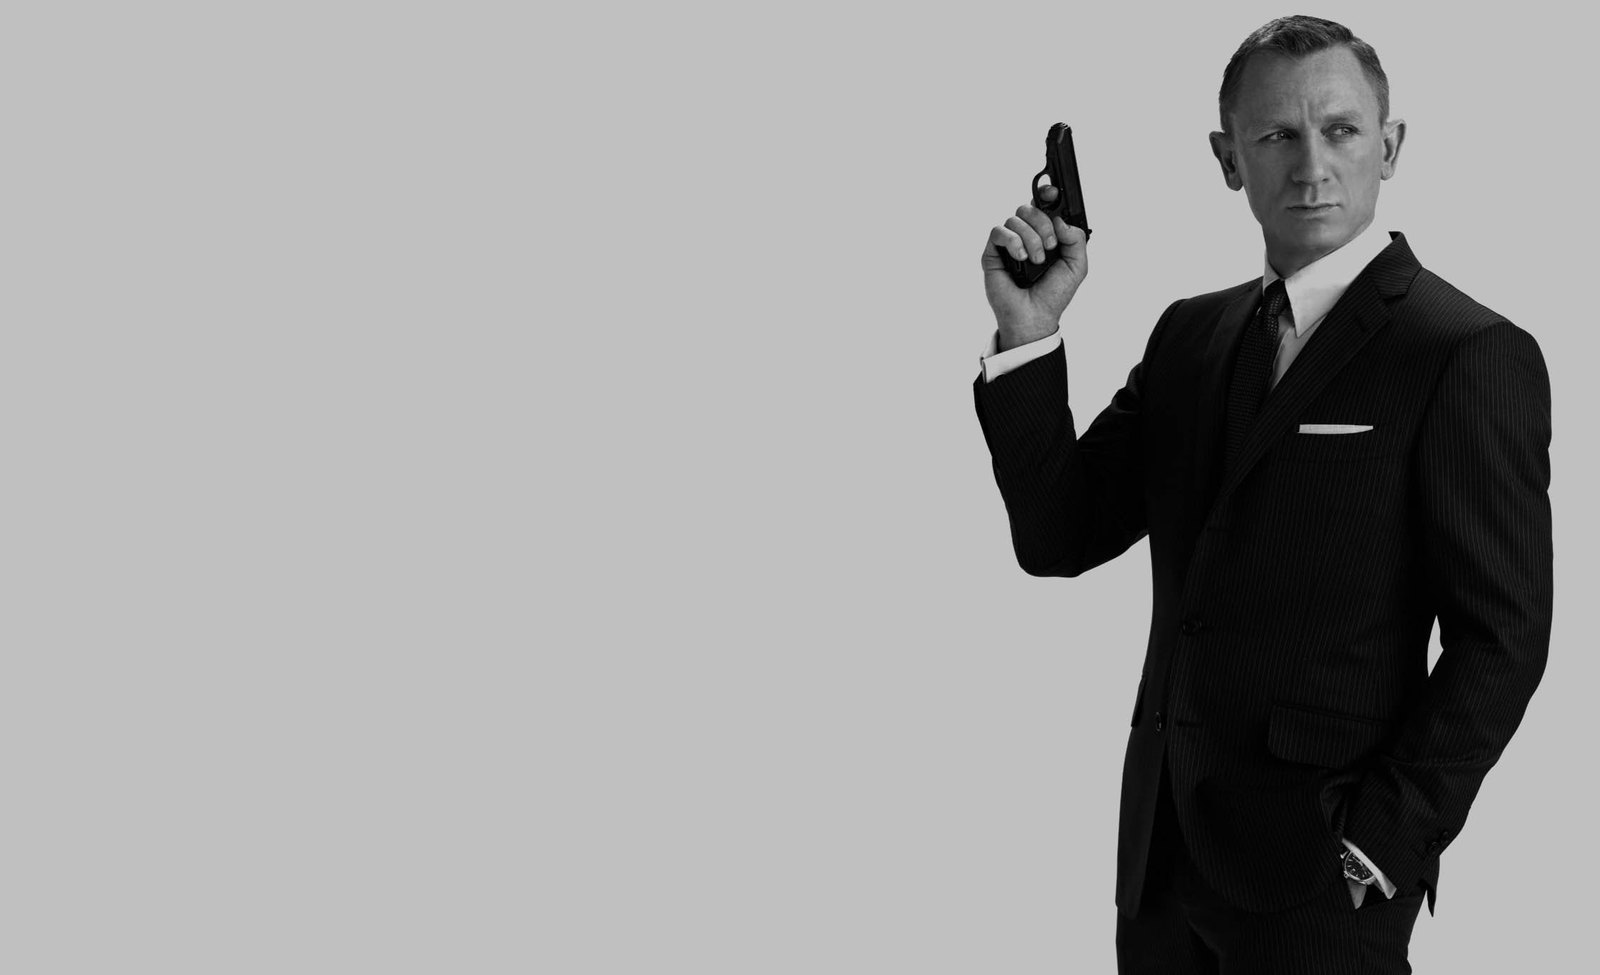 Who will play James Bond Daniel Craig again For the fifth time